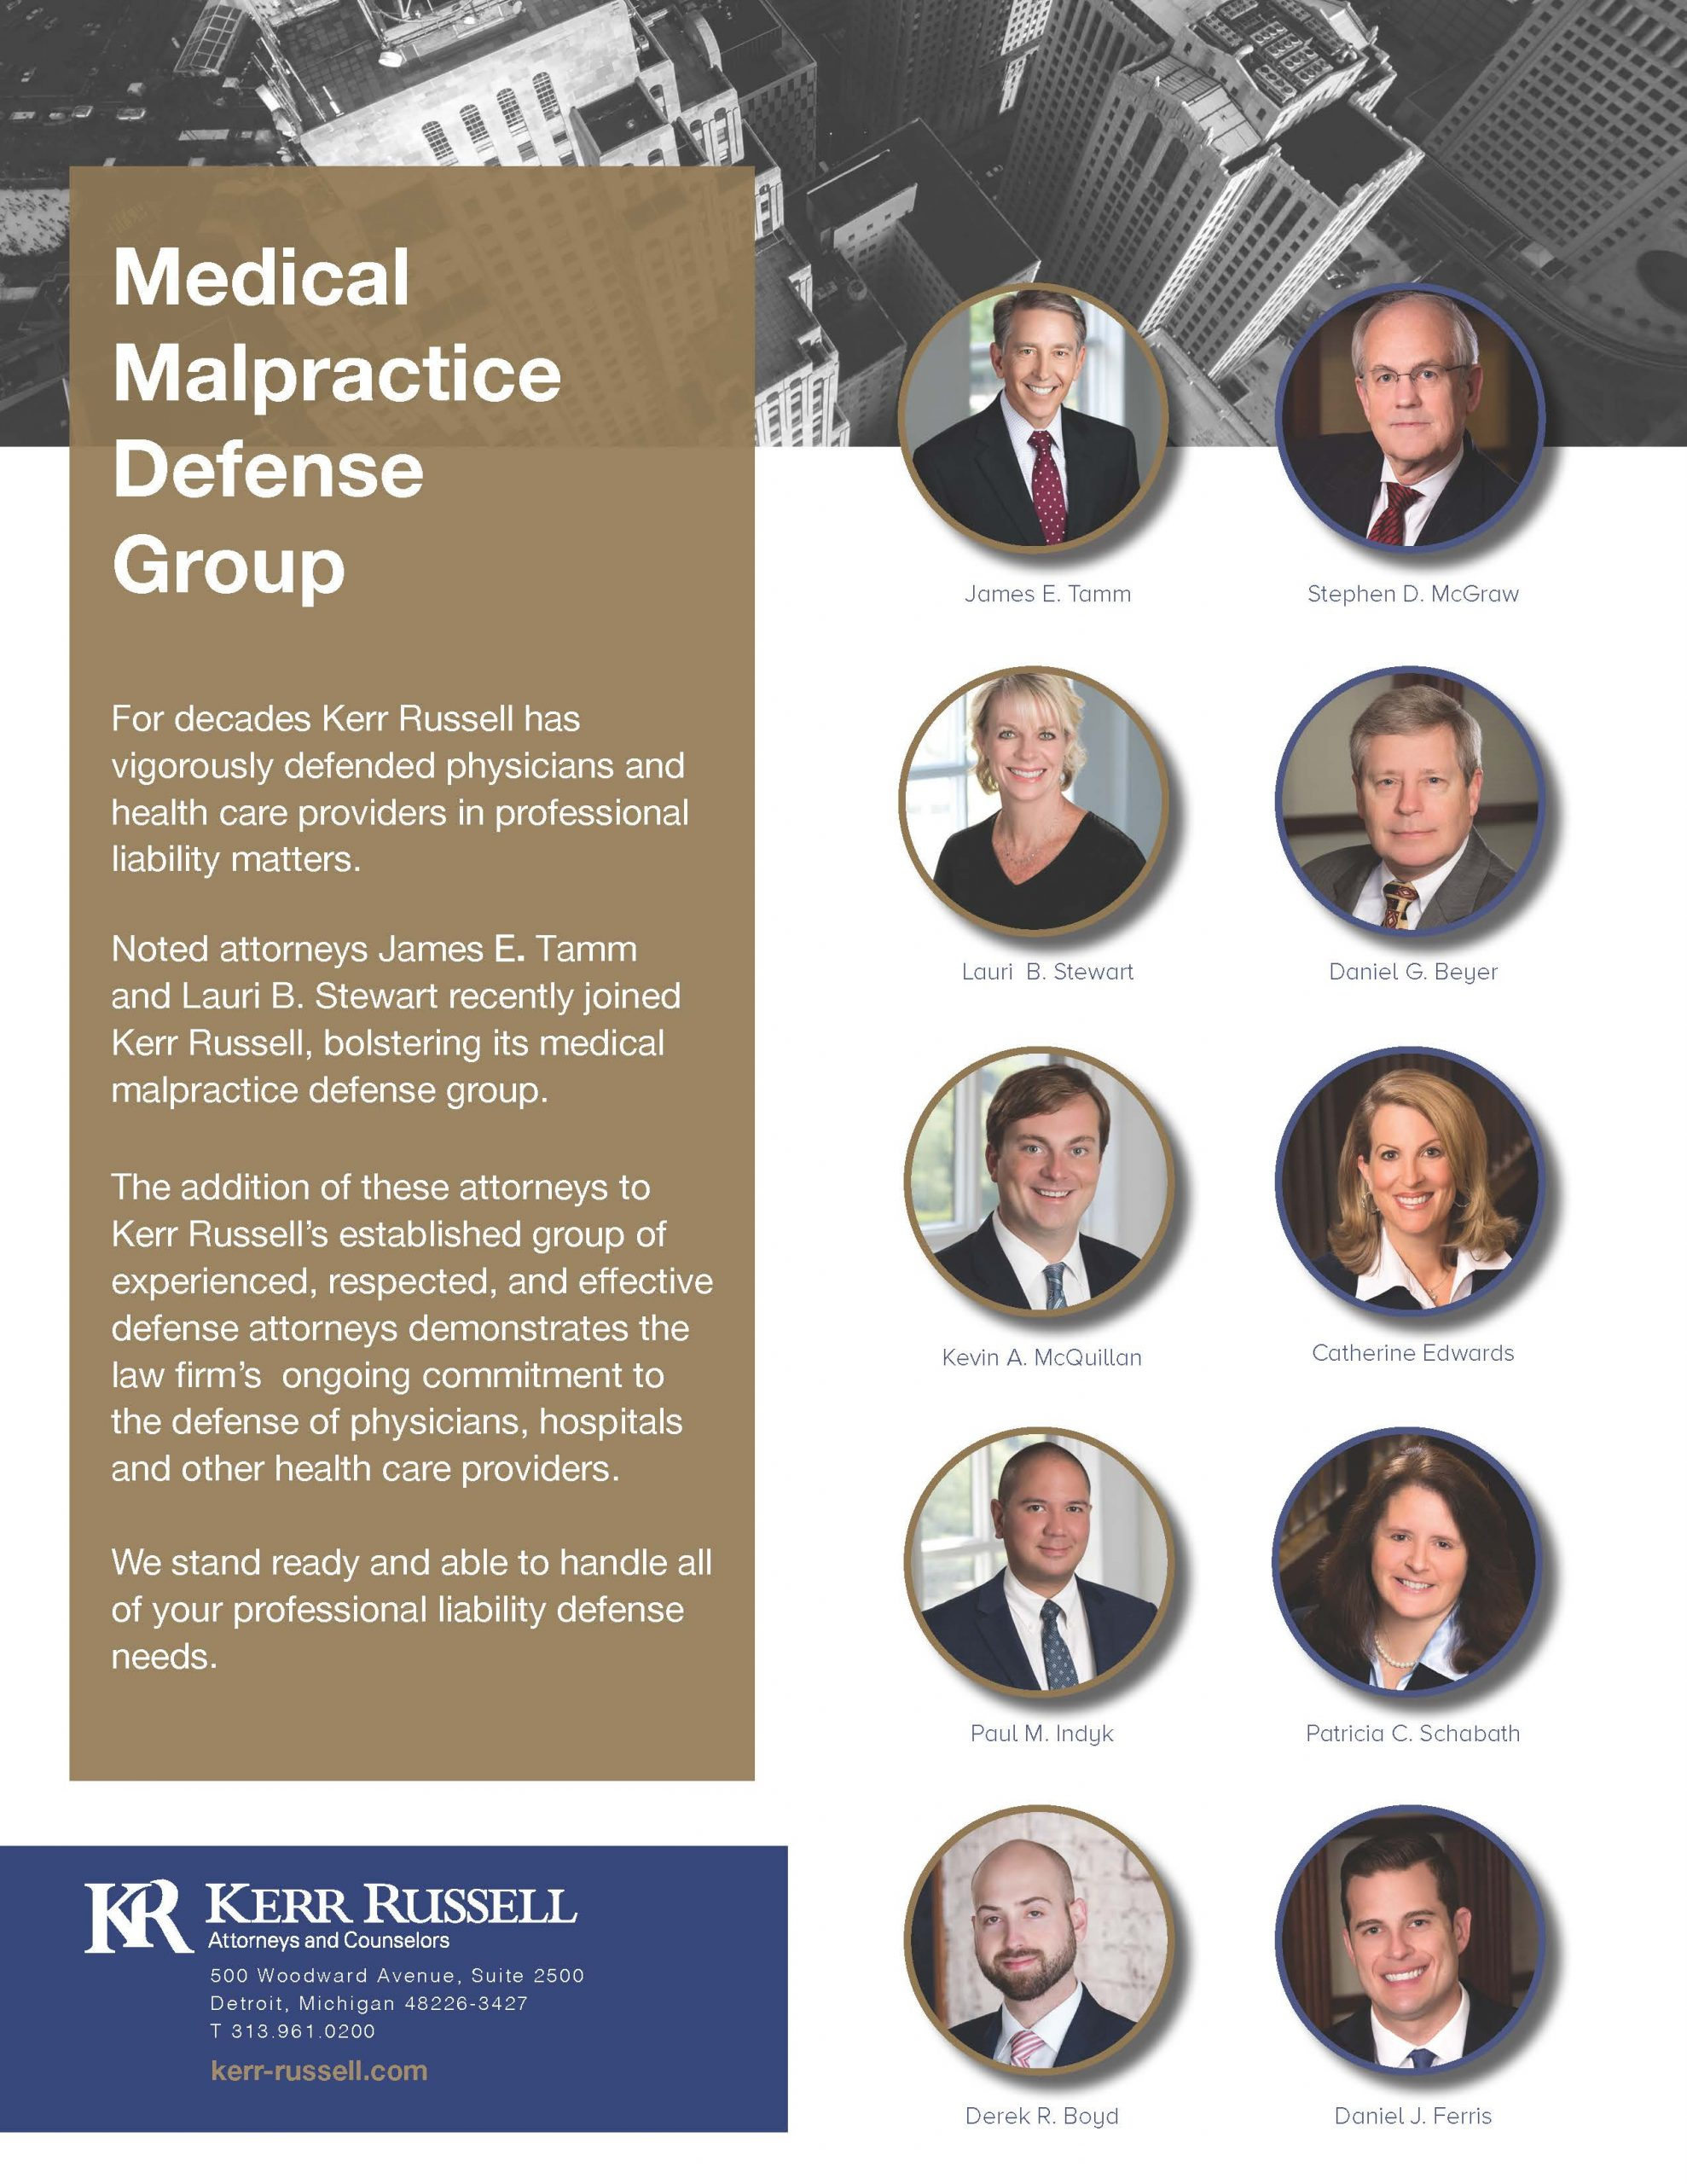 Medical Malpractice Defense Group